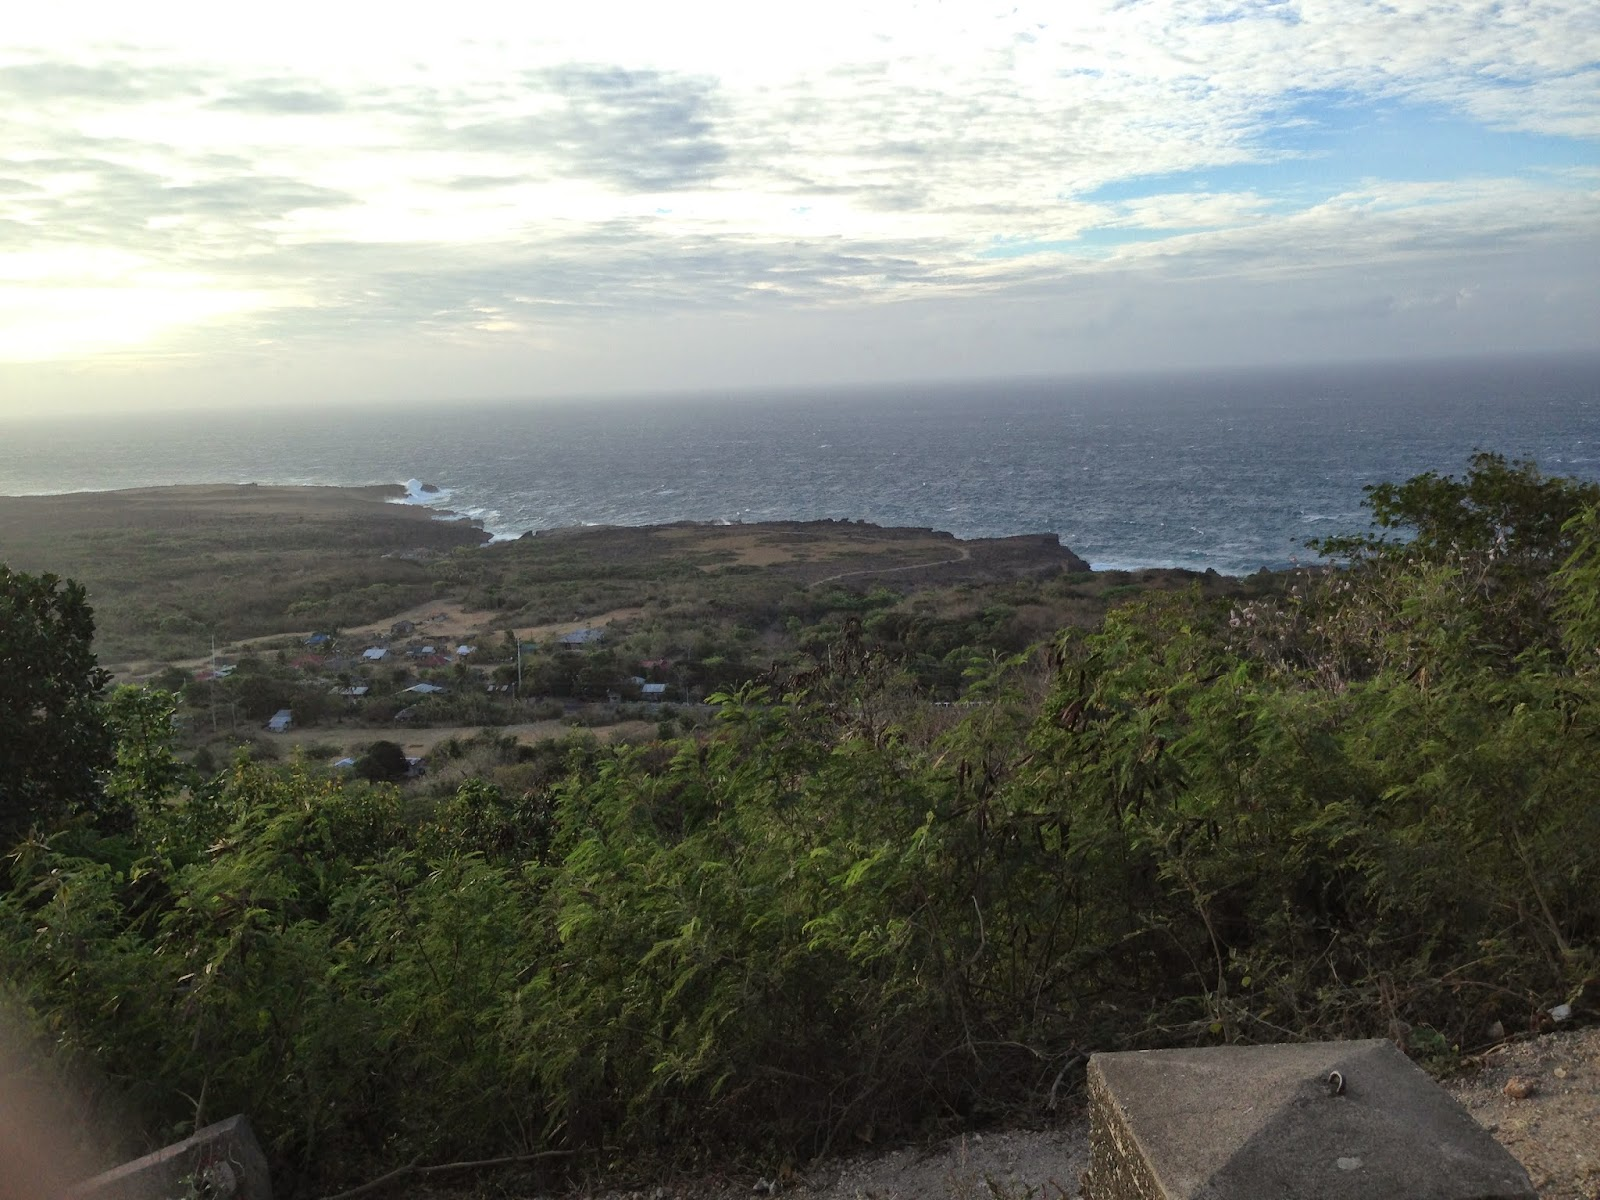 http://www.wanderfulexperience.info/2013/06/a-towering-view-of-cape-bojeador.html